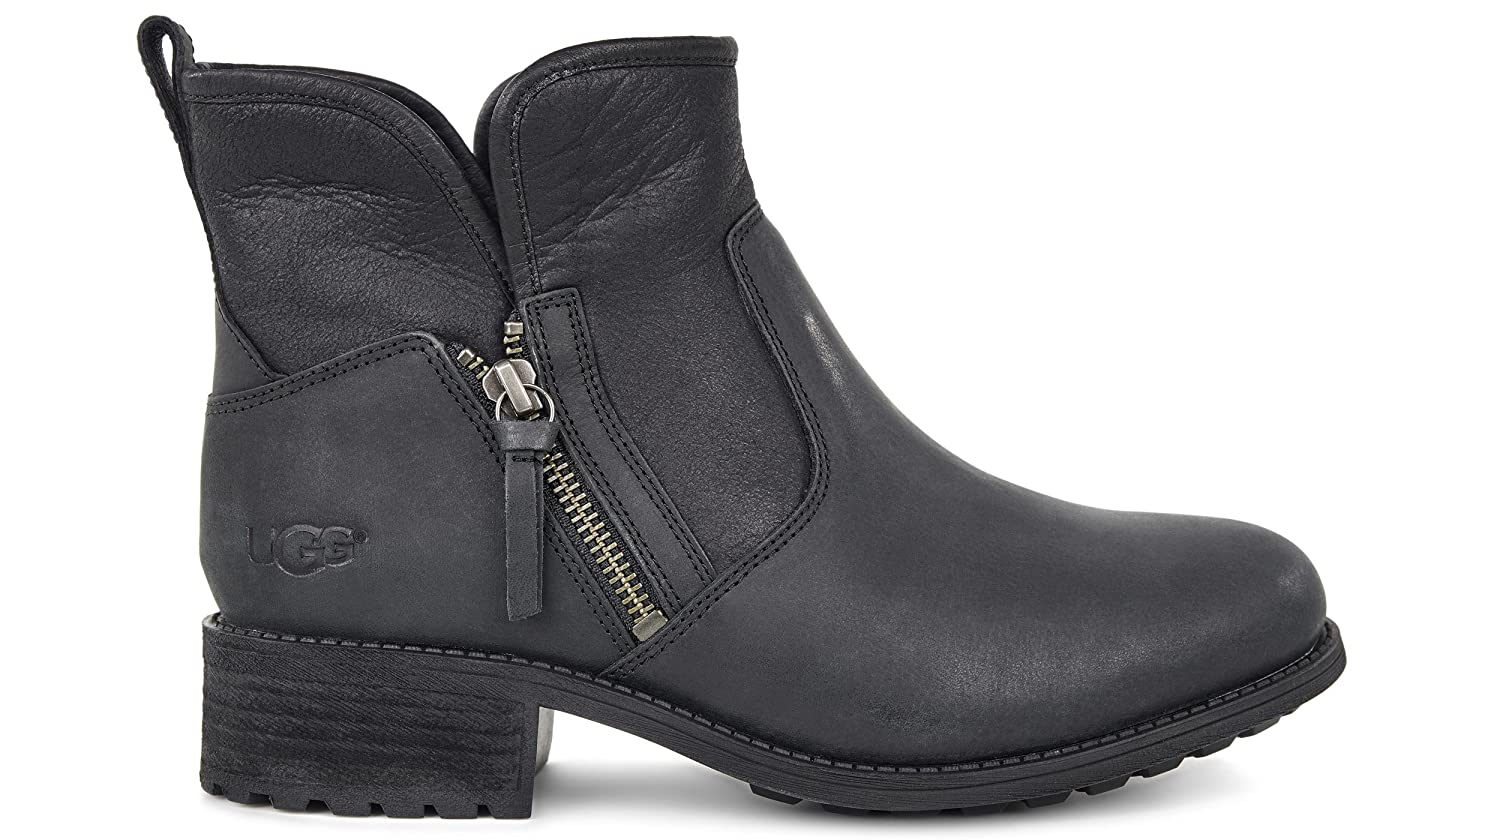 6f49a1c3443 UGG Ankle boots LaVelle 1013366-BLK